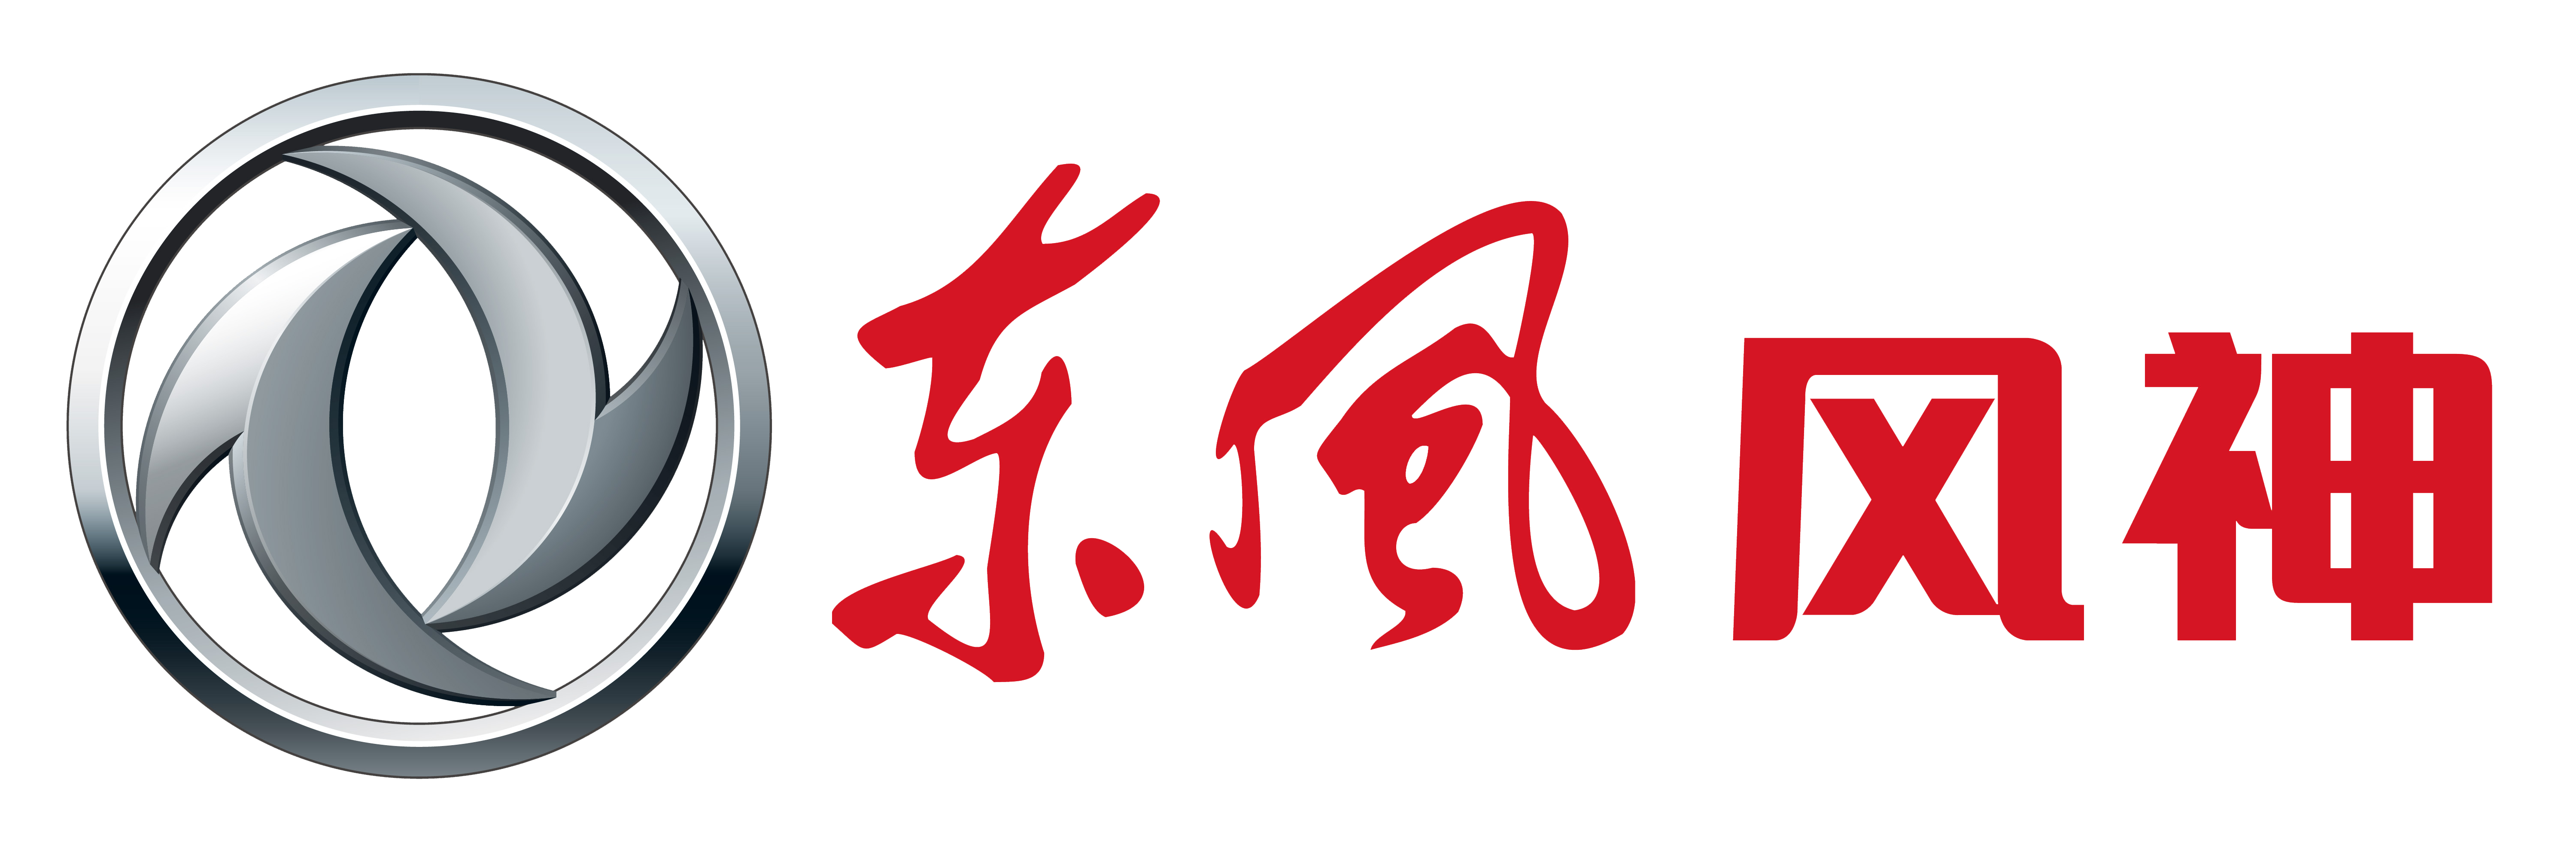 6000x2000 HD Png - Dongfeng PNG